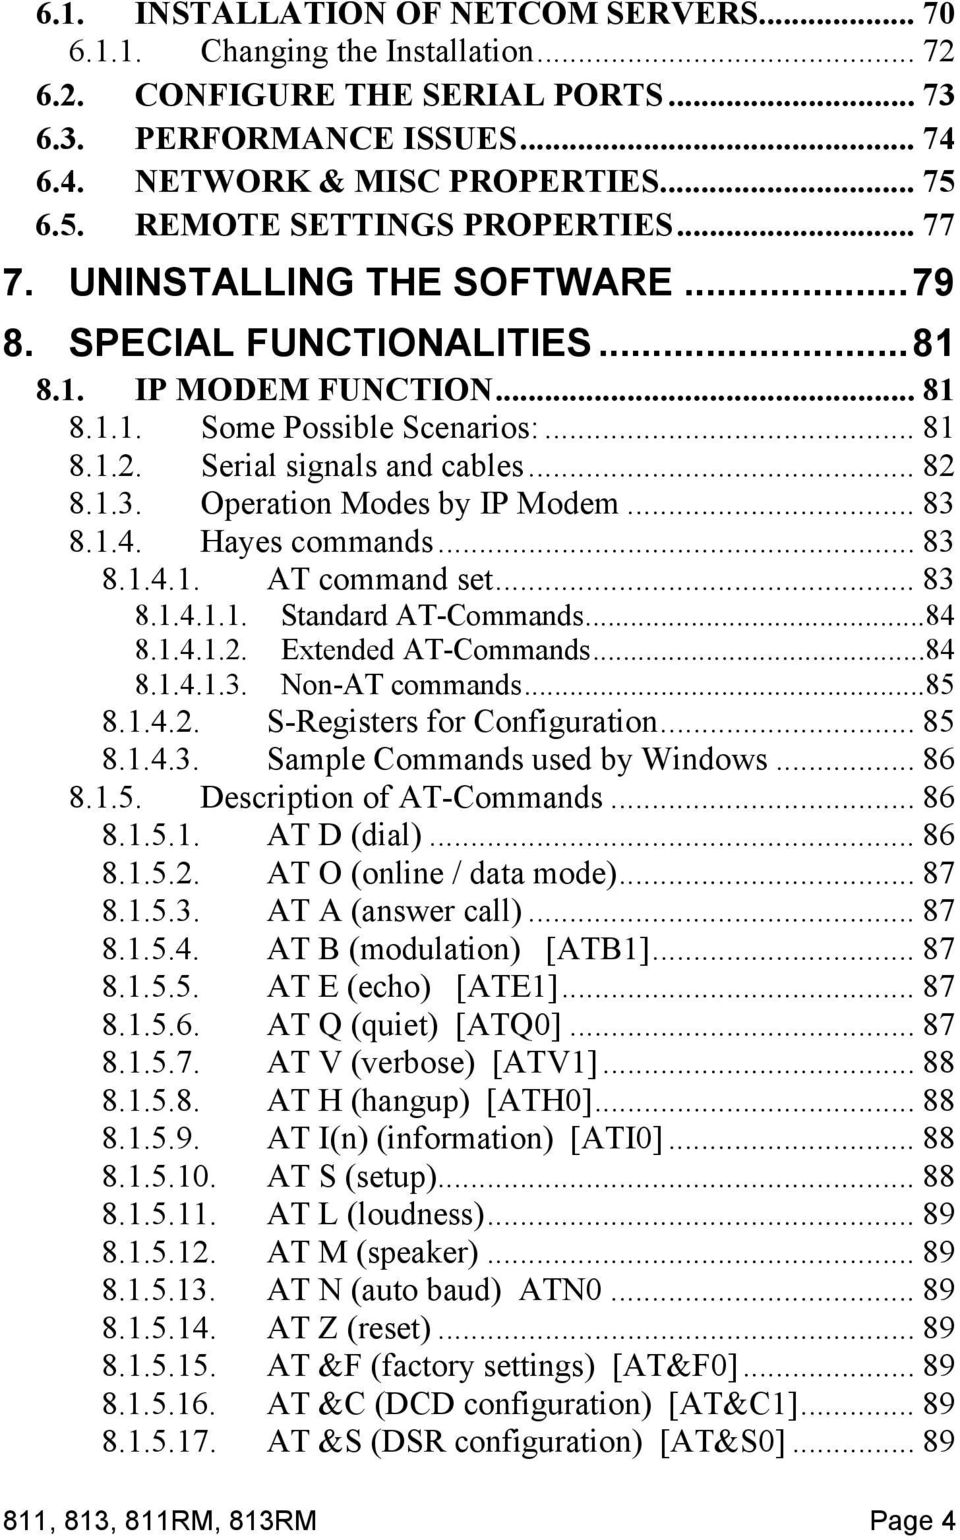 Serial signals and cables... 82 8.1.3. Operation Modes by IP Modem... 83 8.1.4. Hayes commands... 83 8.1.4.1. AT command set... 83 8.1.4.1.1. Standard AT-Commands...84 8.1.4.1.2. Extended AT-Commands.